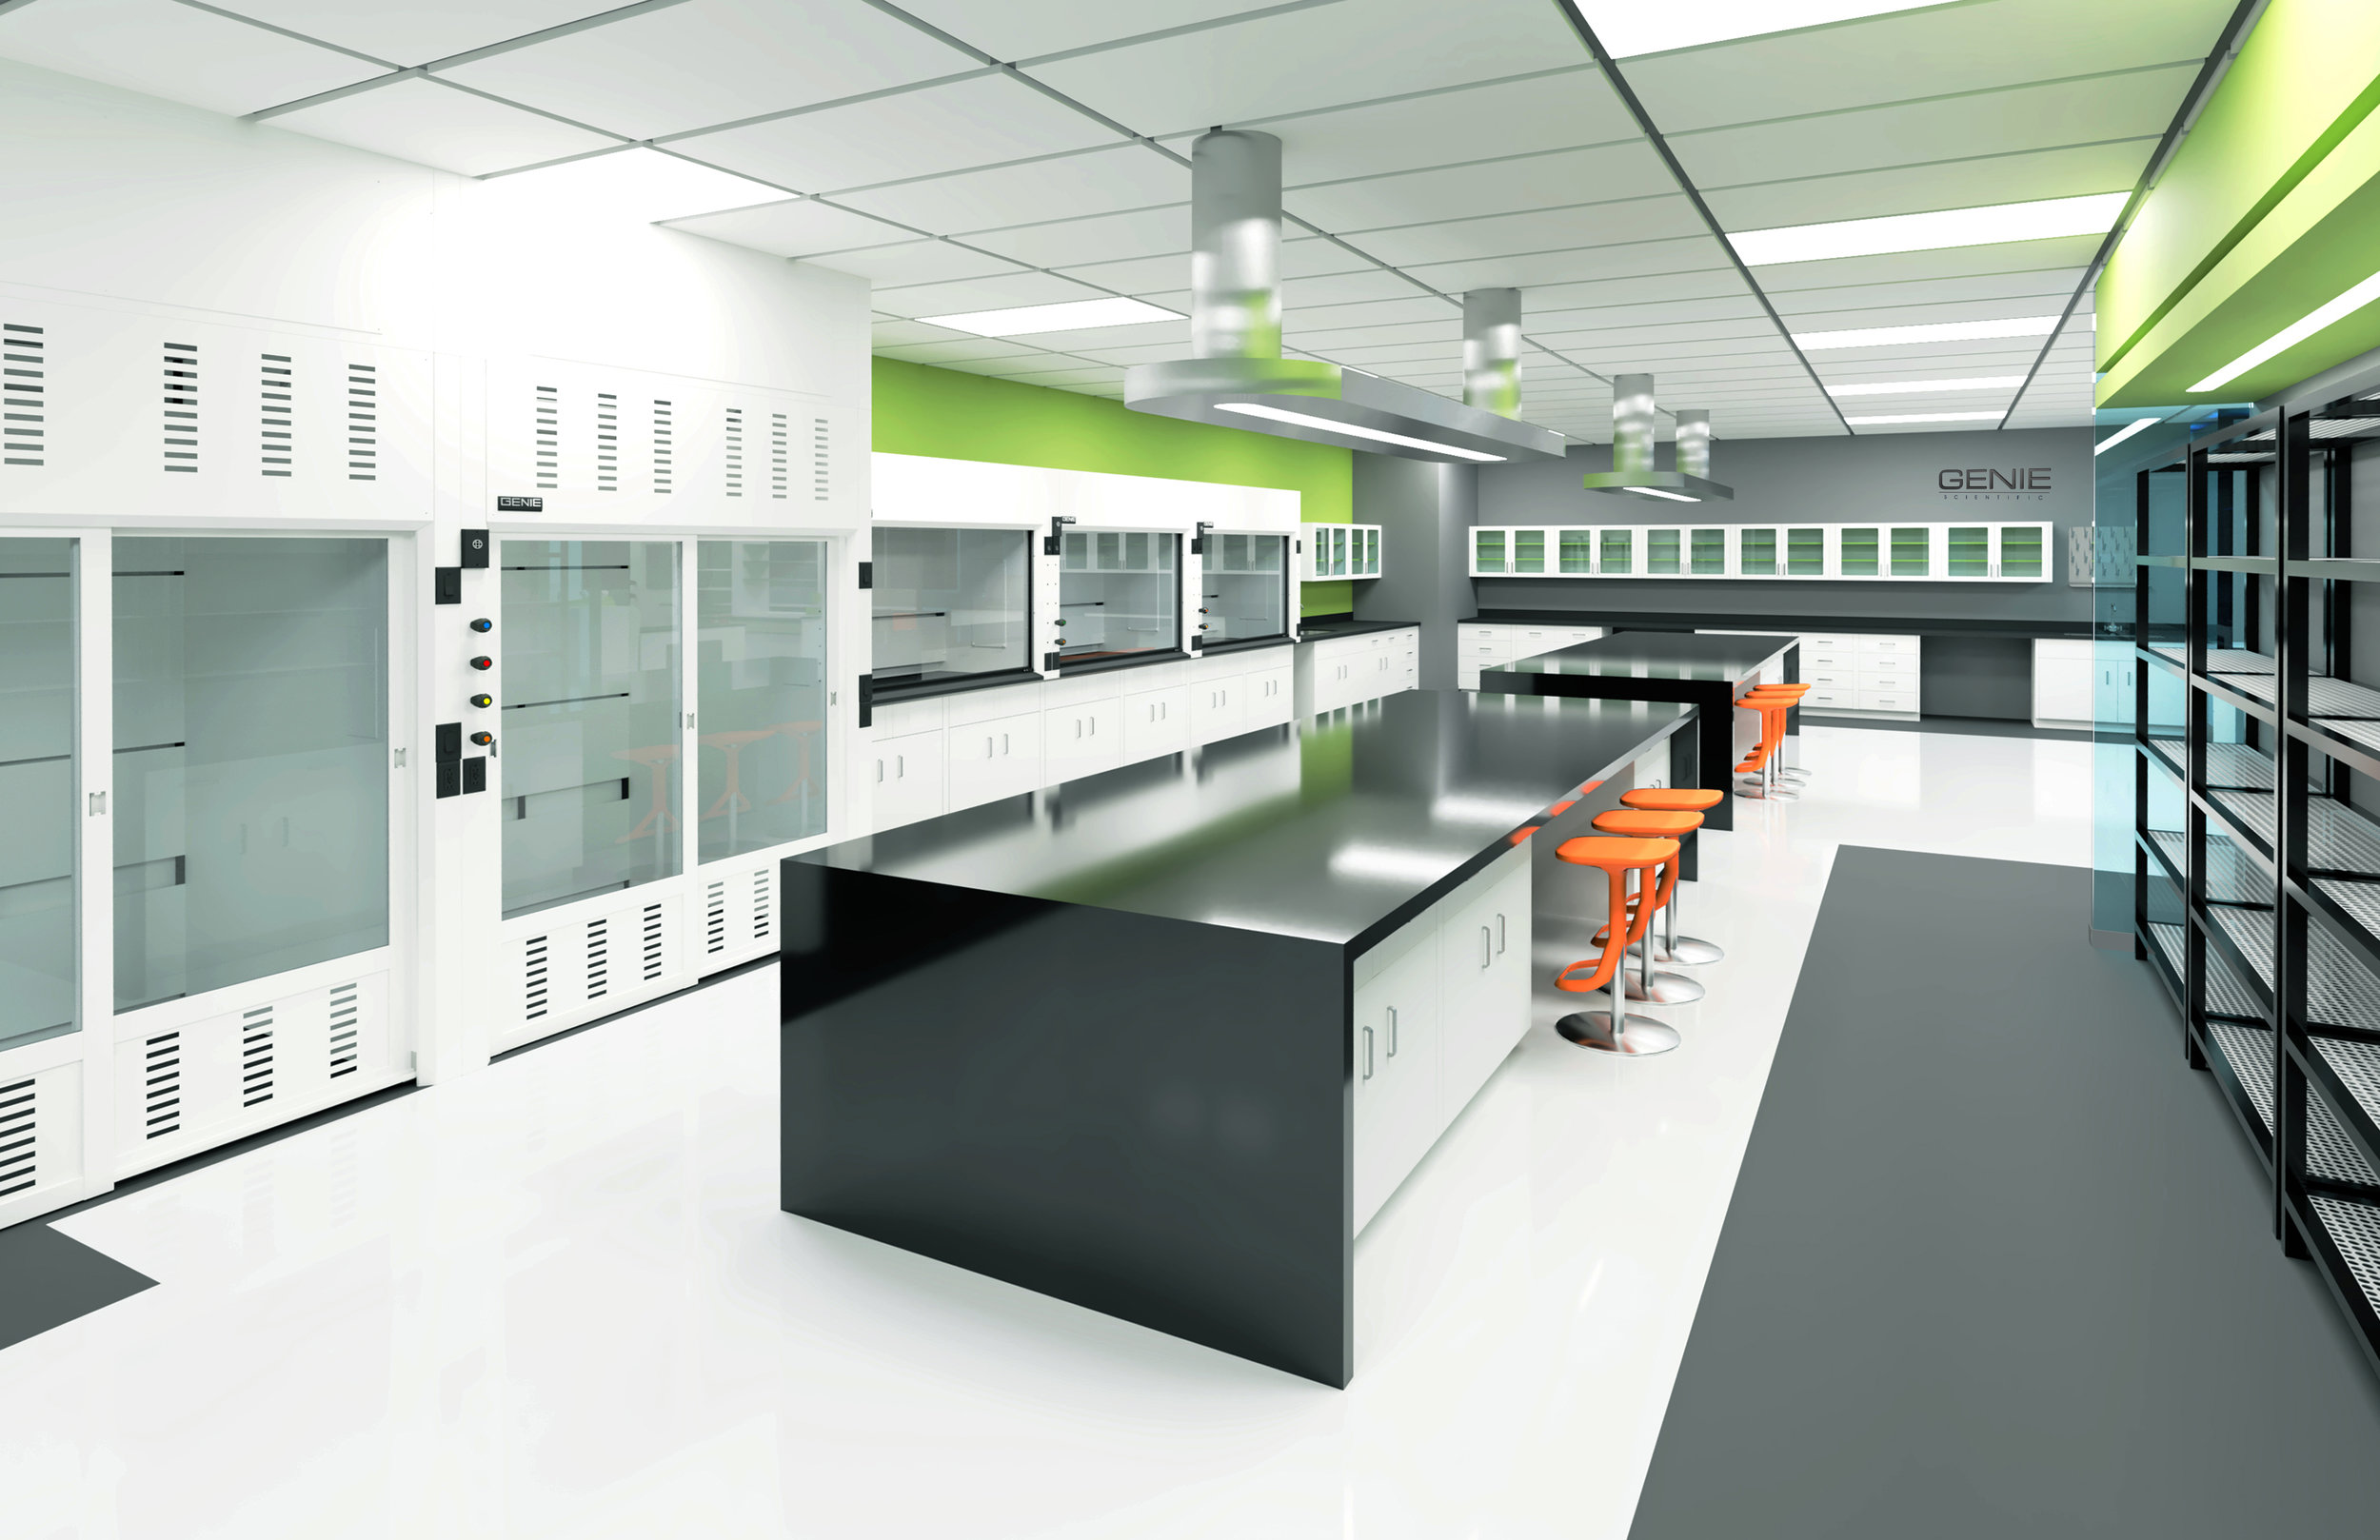 Lab Extraction Rendering 2 17x11.jpg